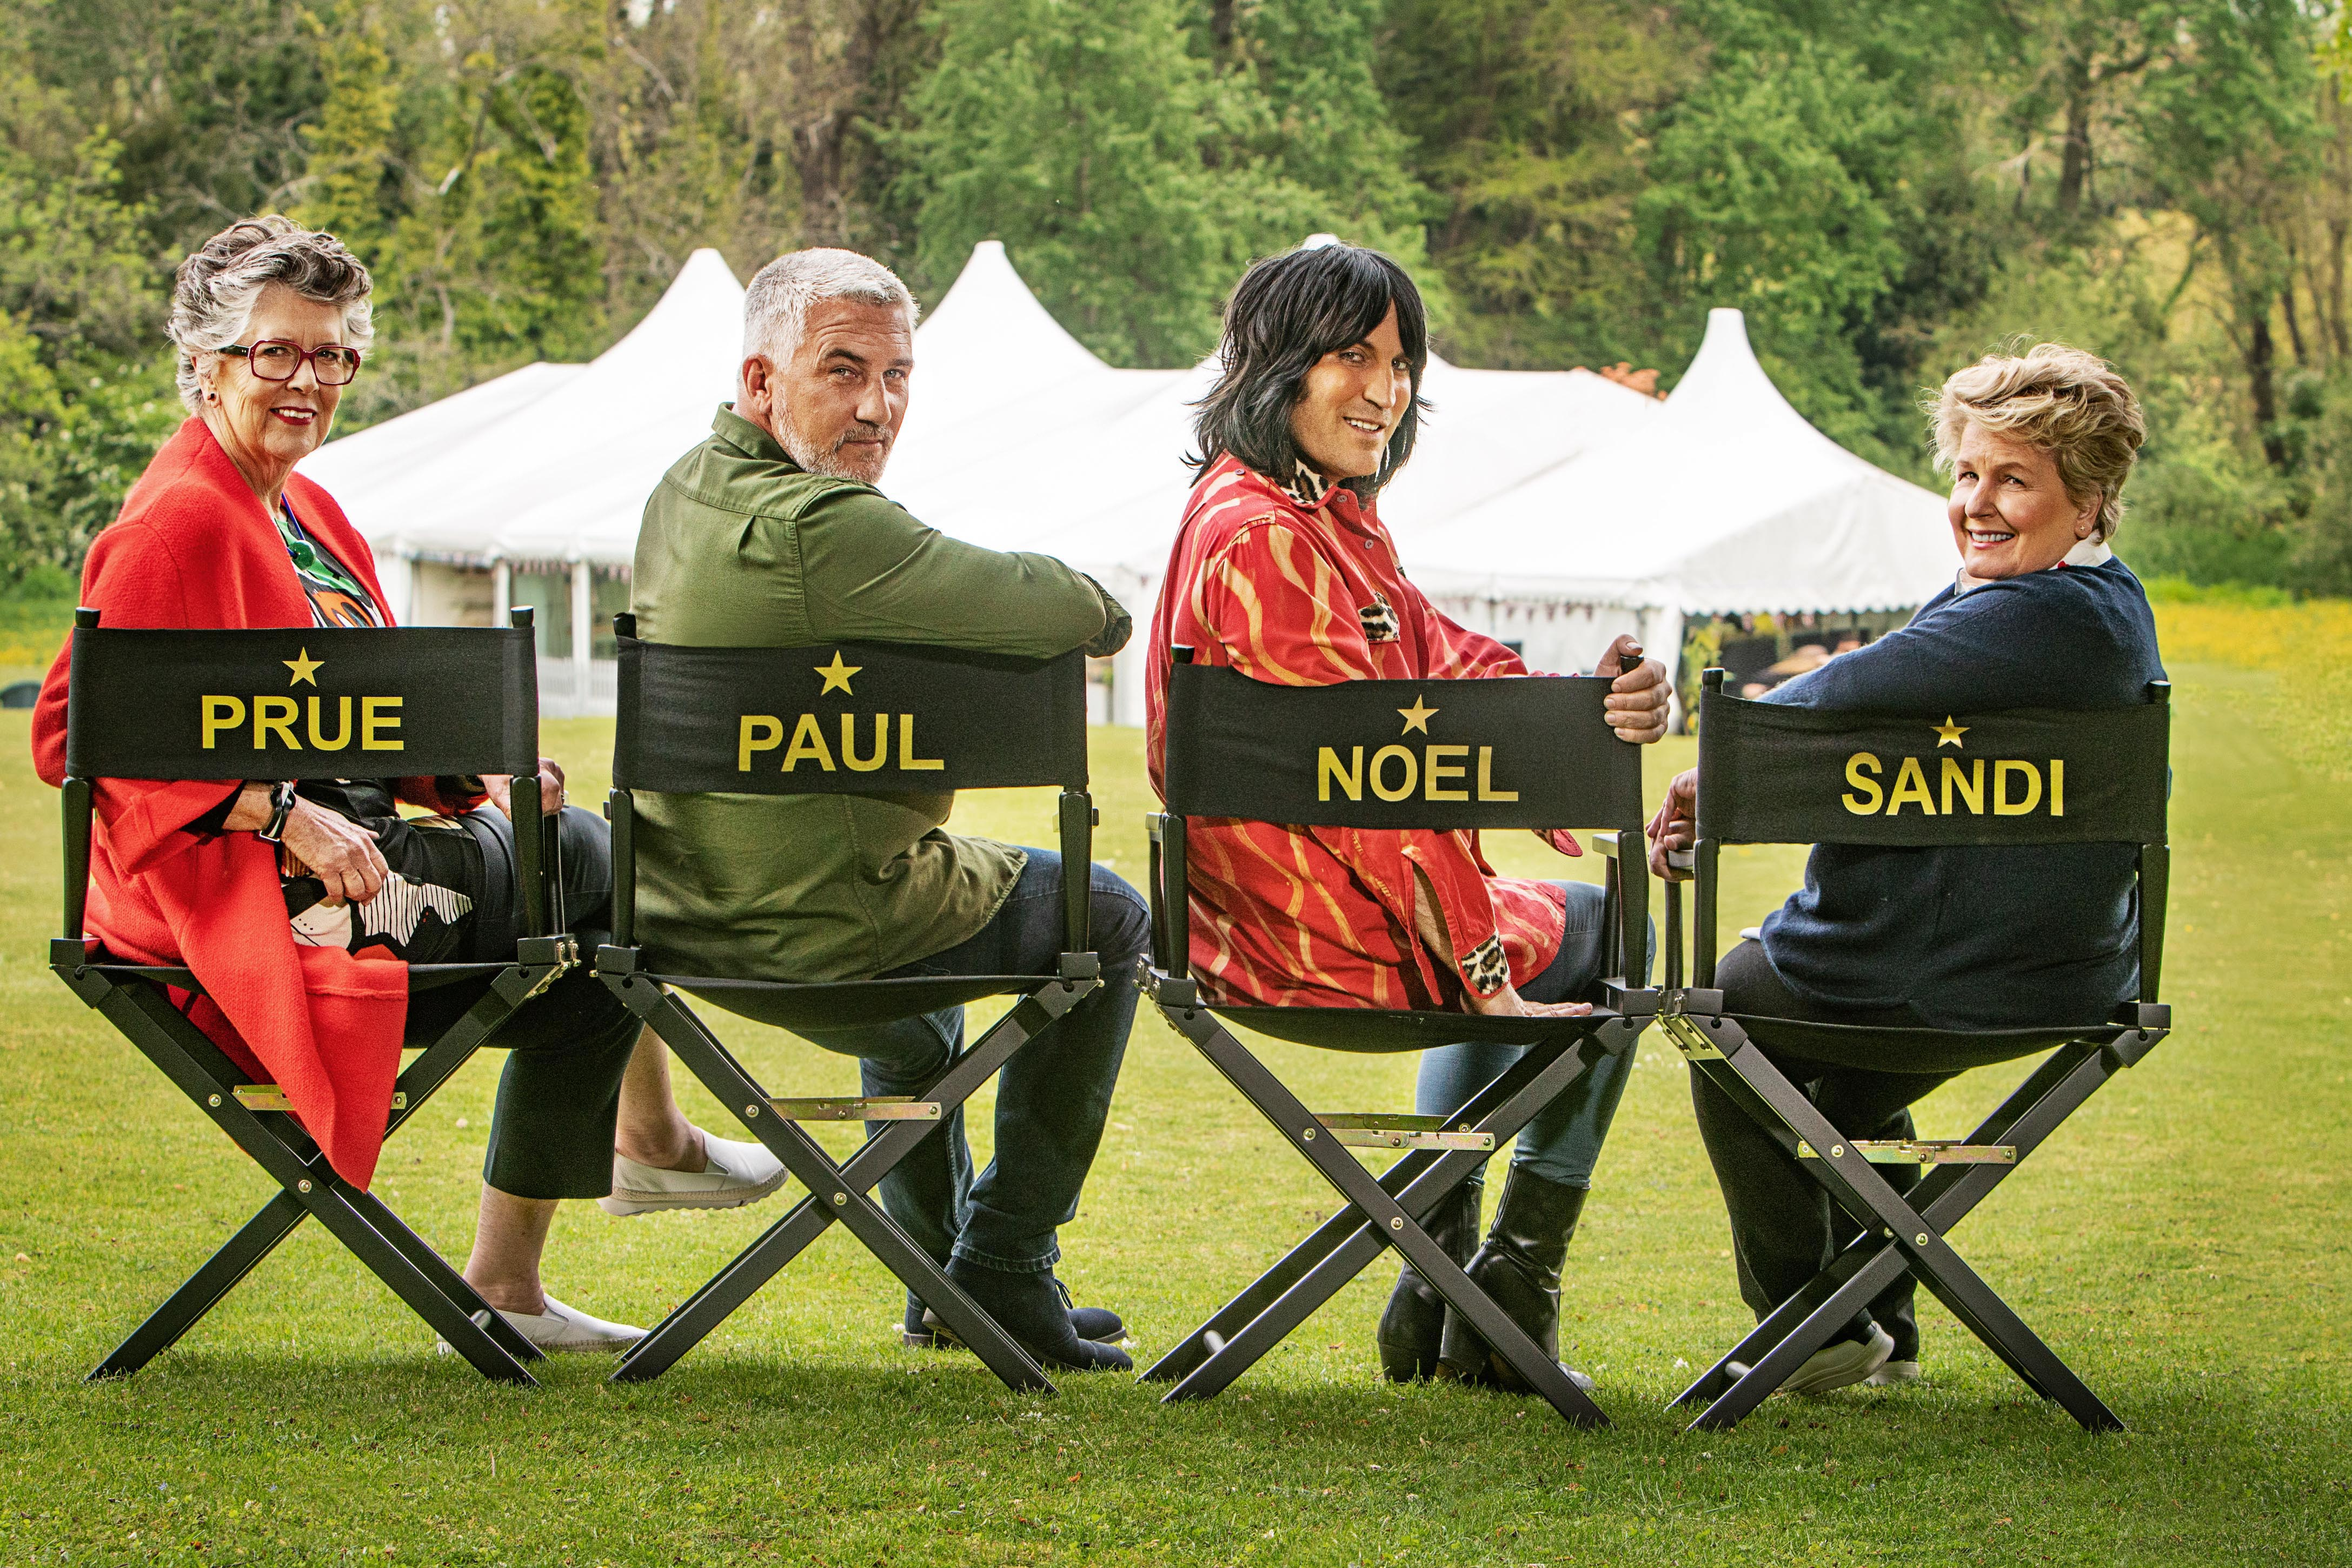 Noel Fielding, Prue Leith and Paul Hollywood will stay on The Great British Bake Off